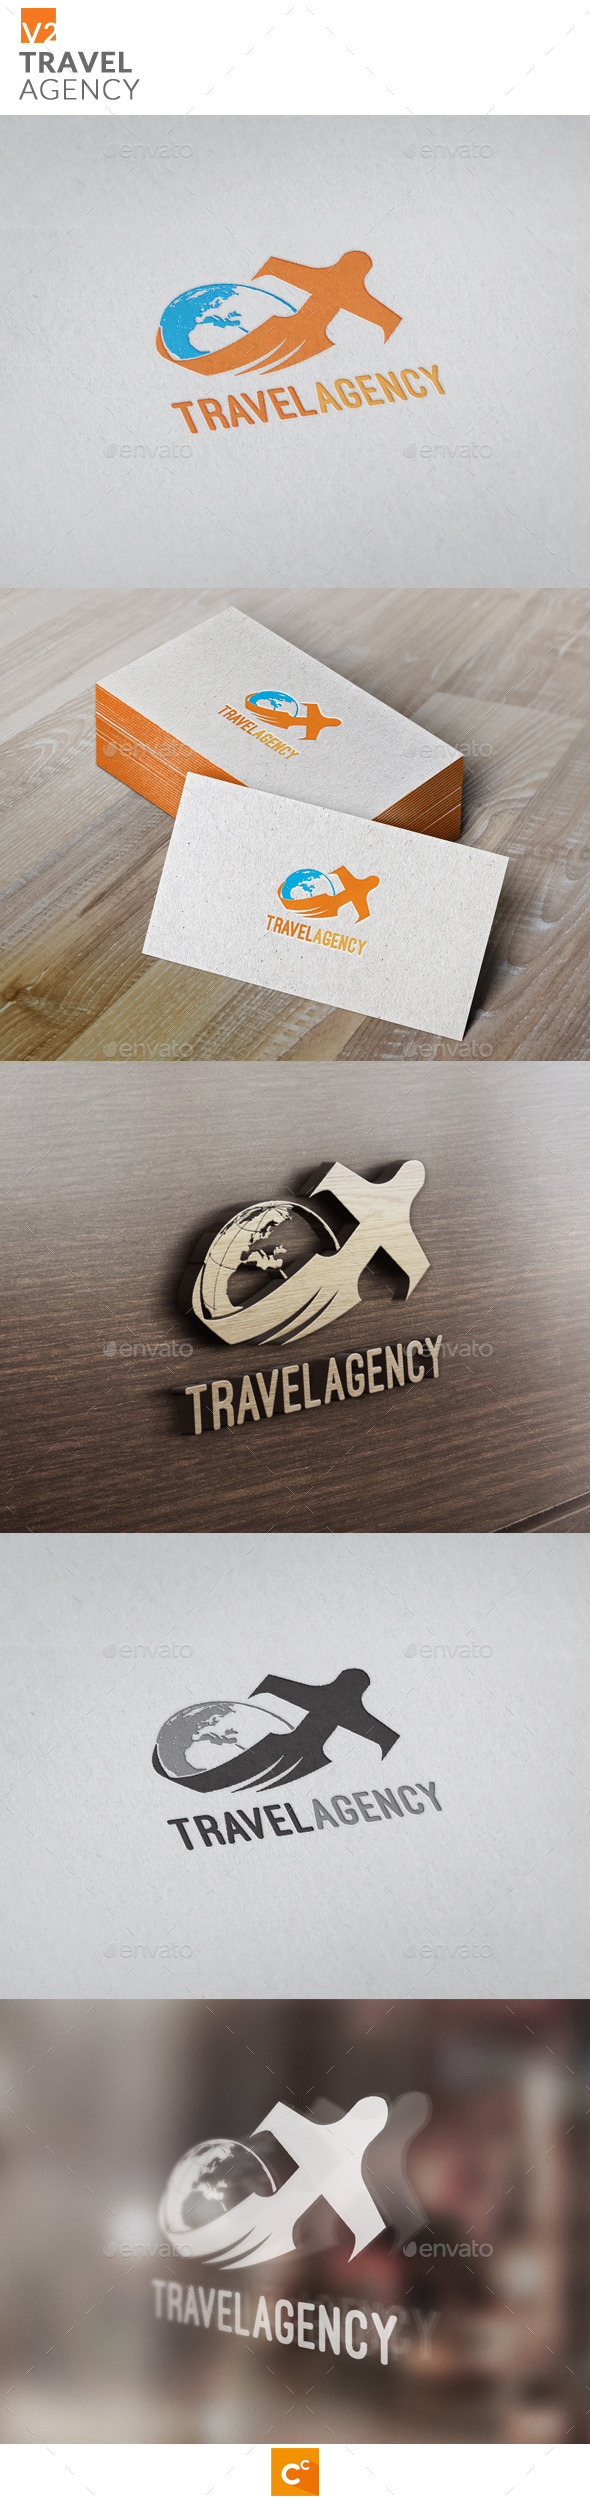 Travel Agency v2 - Objects Logo Templates